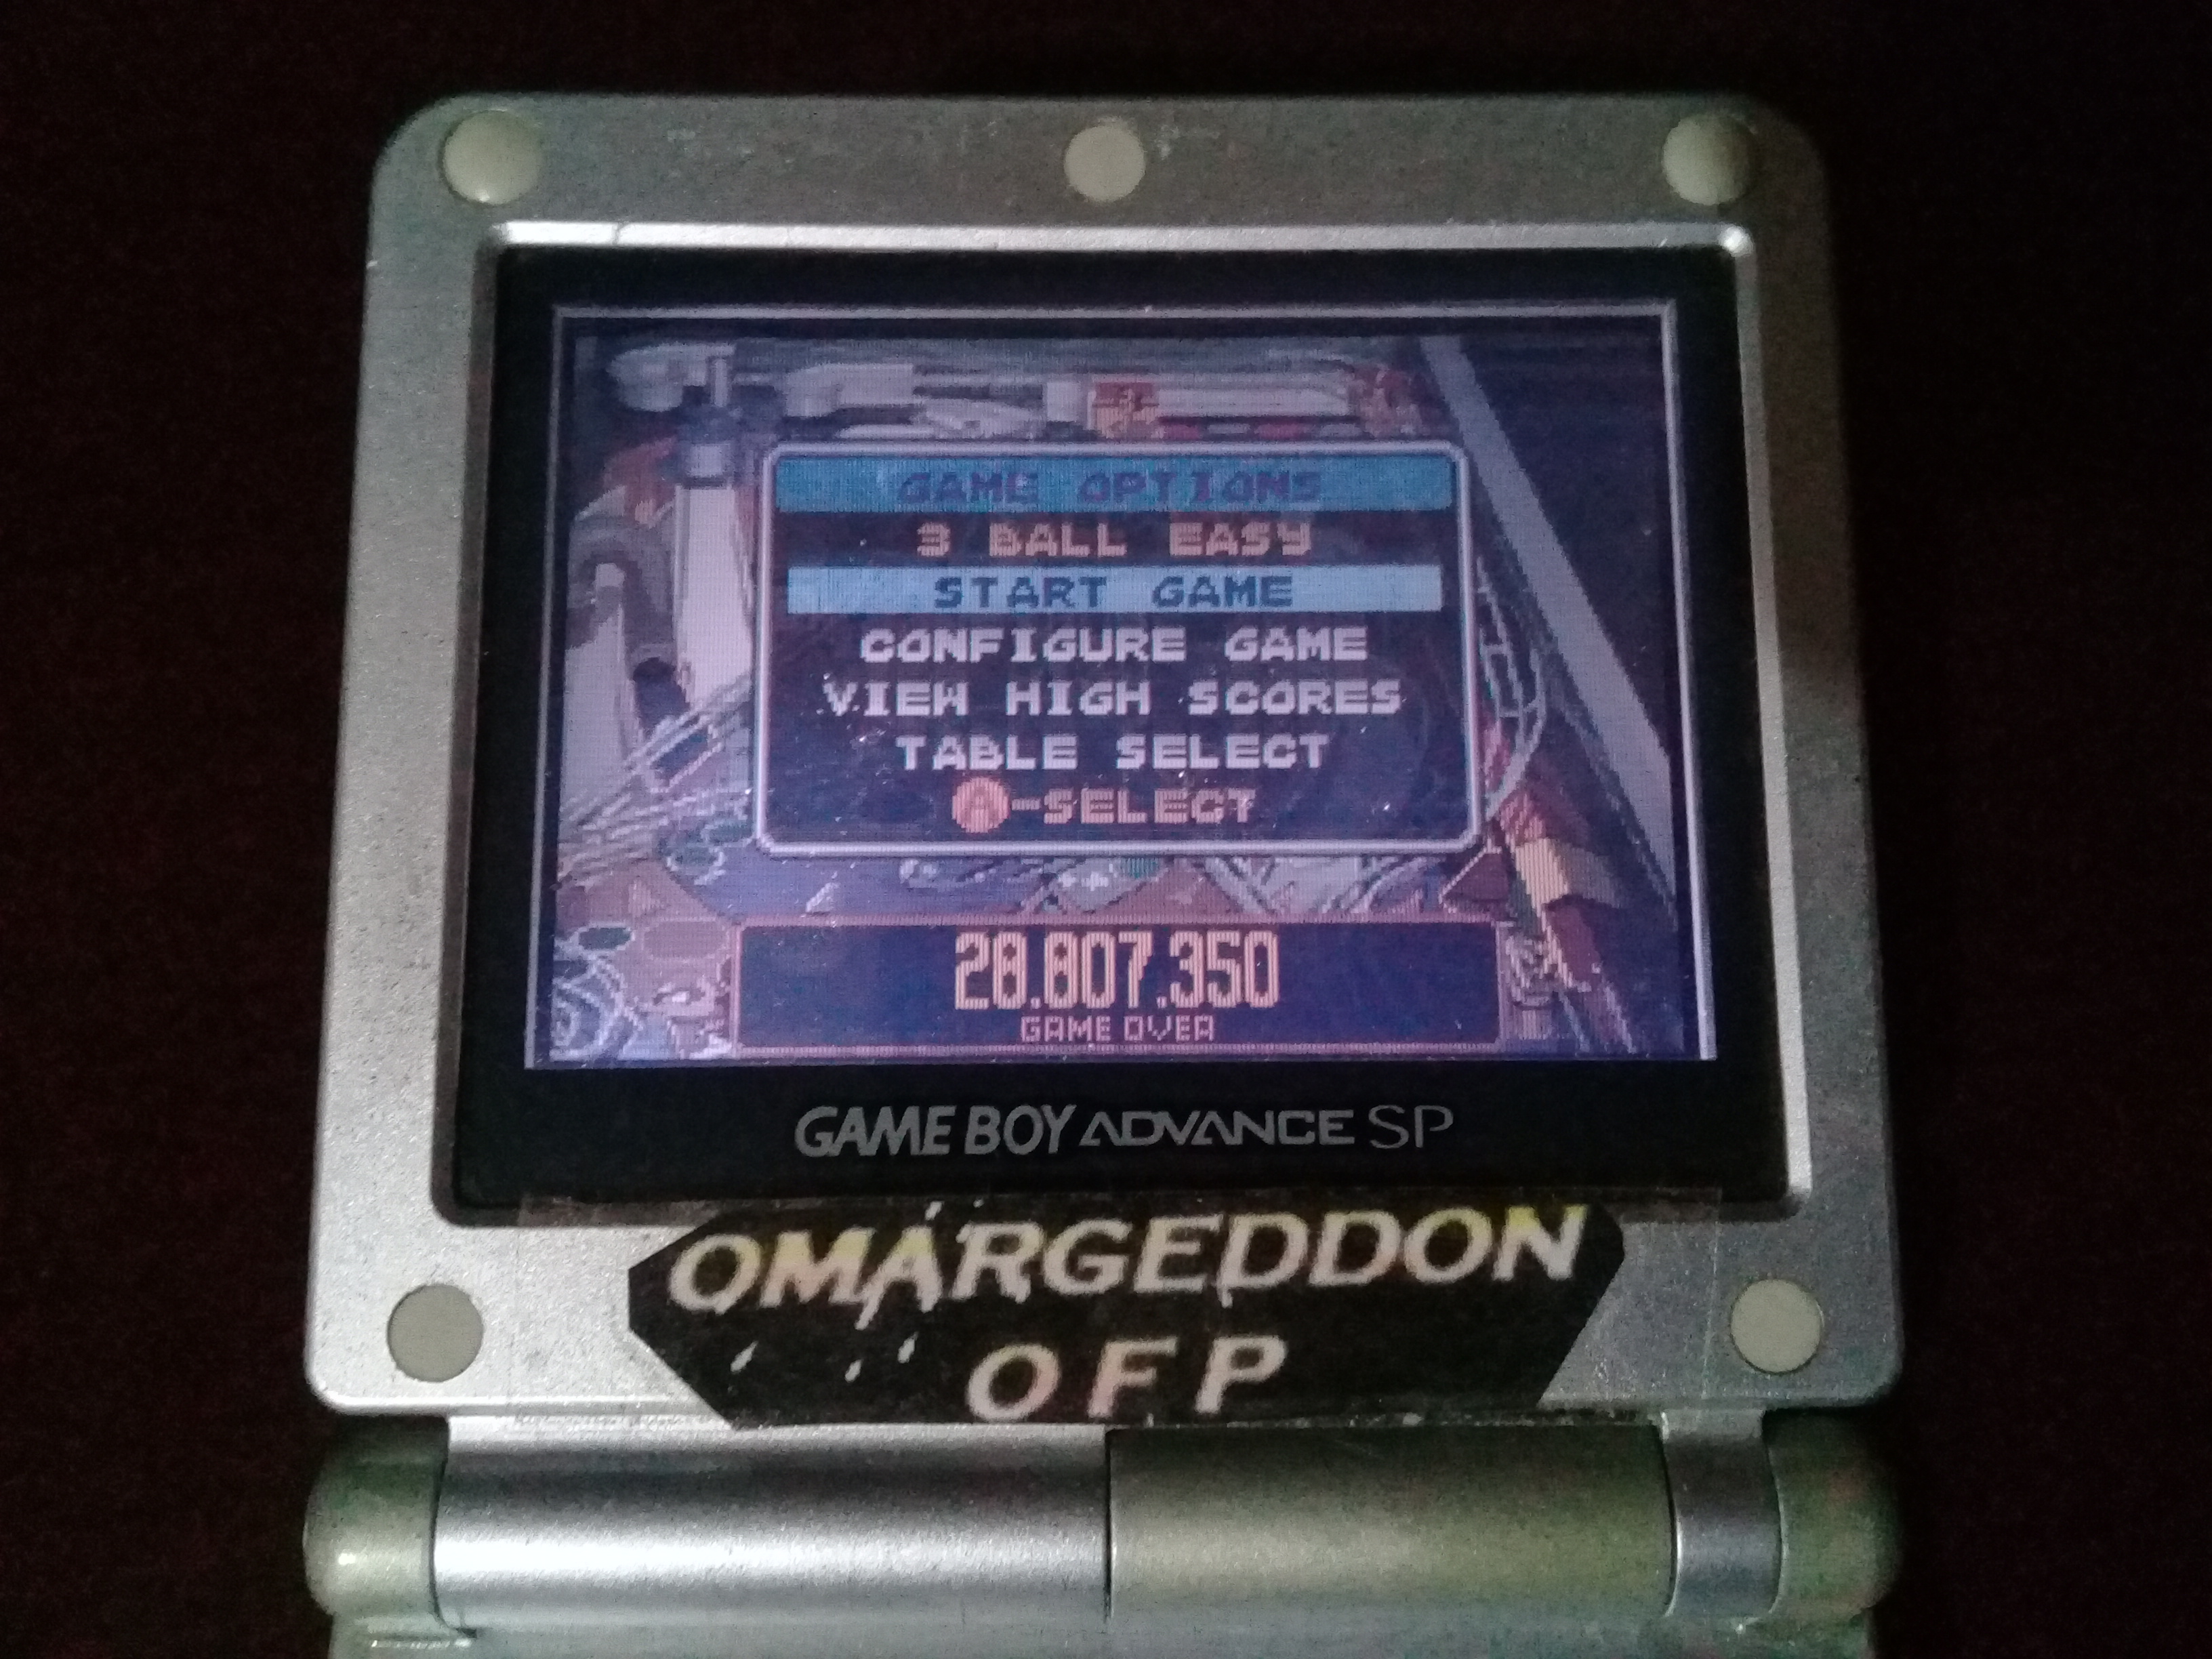 omargeddon: Pinball Advance: Dare Devil [3 Balls] [Easy] (GBA) 28,807,350 points on 2019-09-15 11:00:53